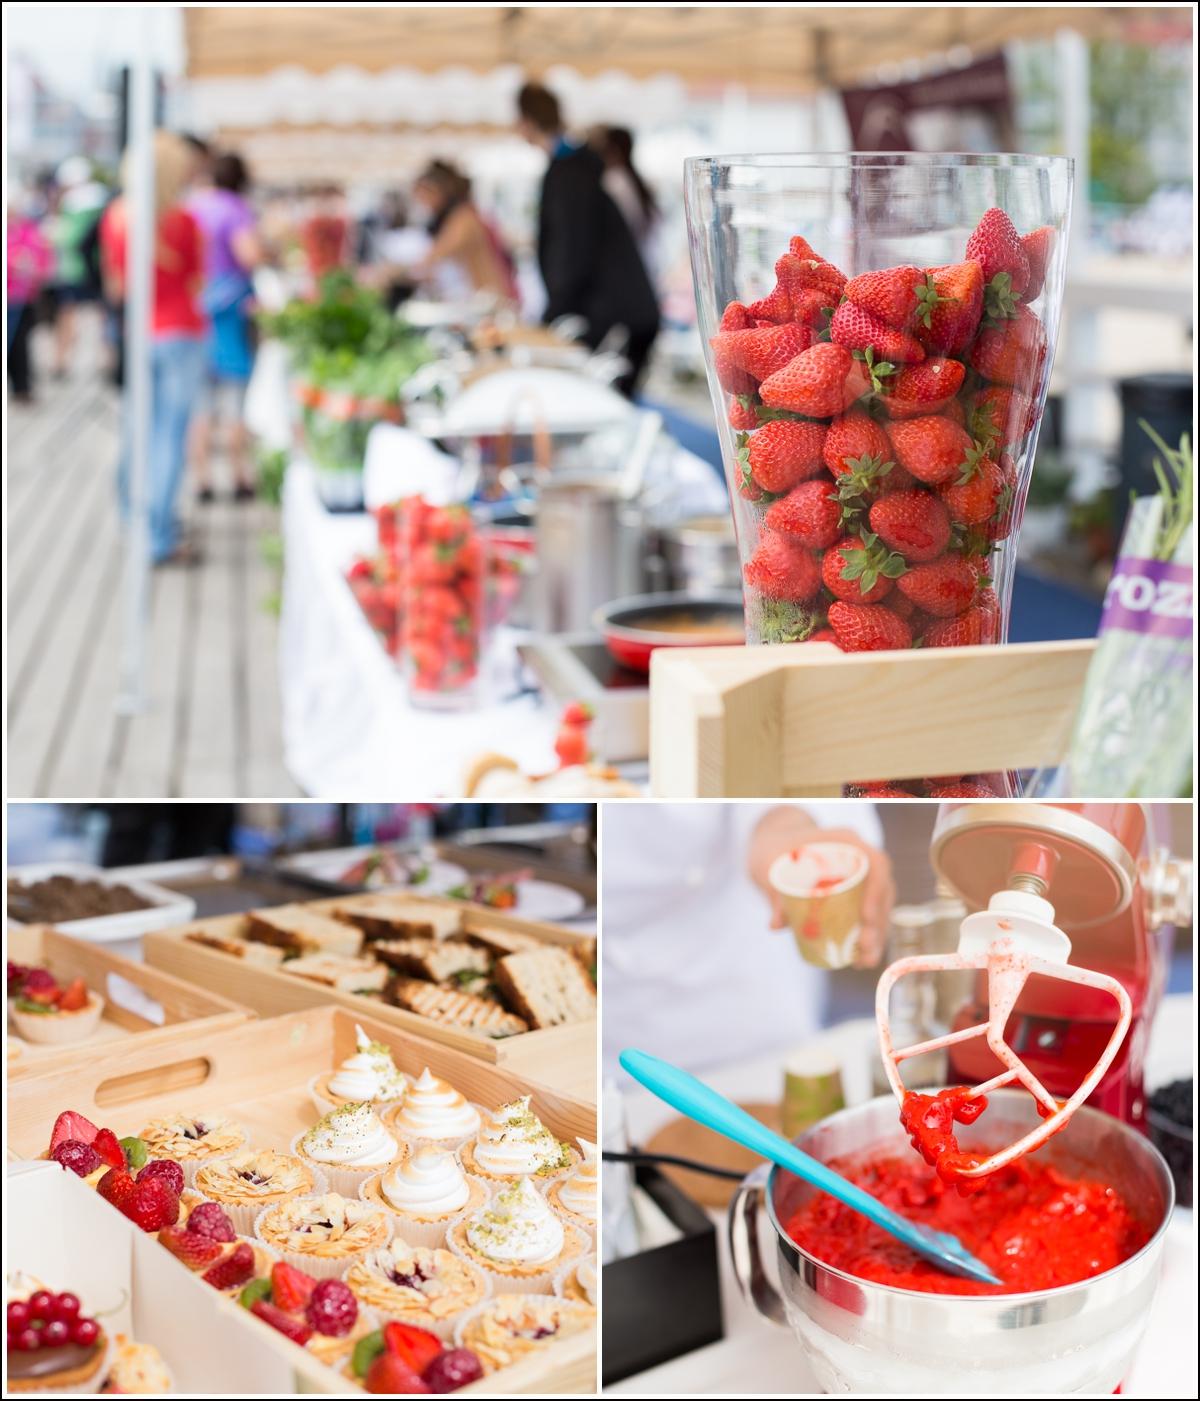 slow-food-festival-sopot-strawberry